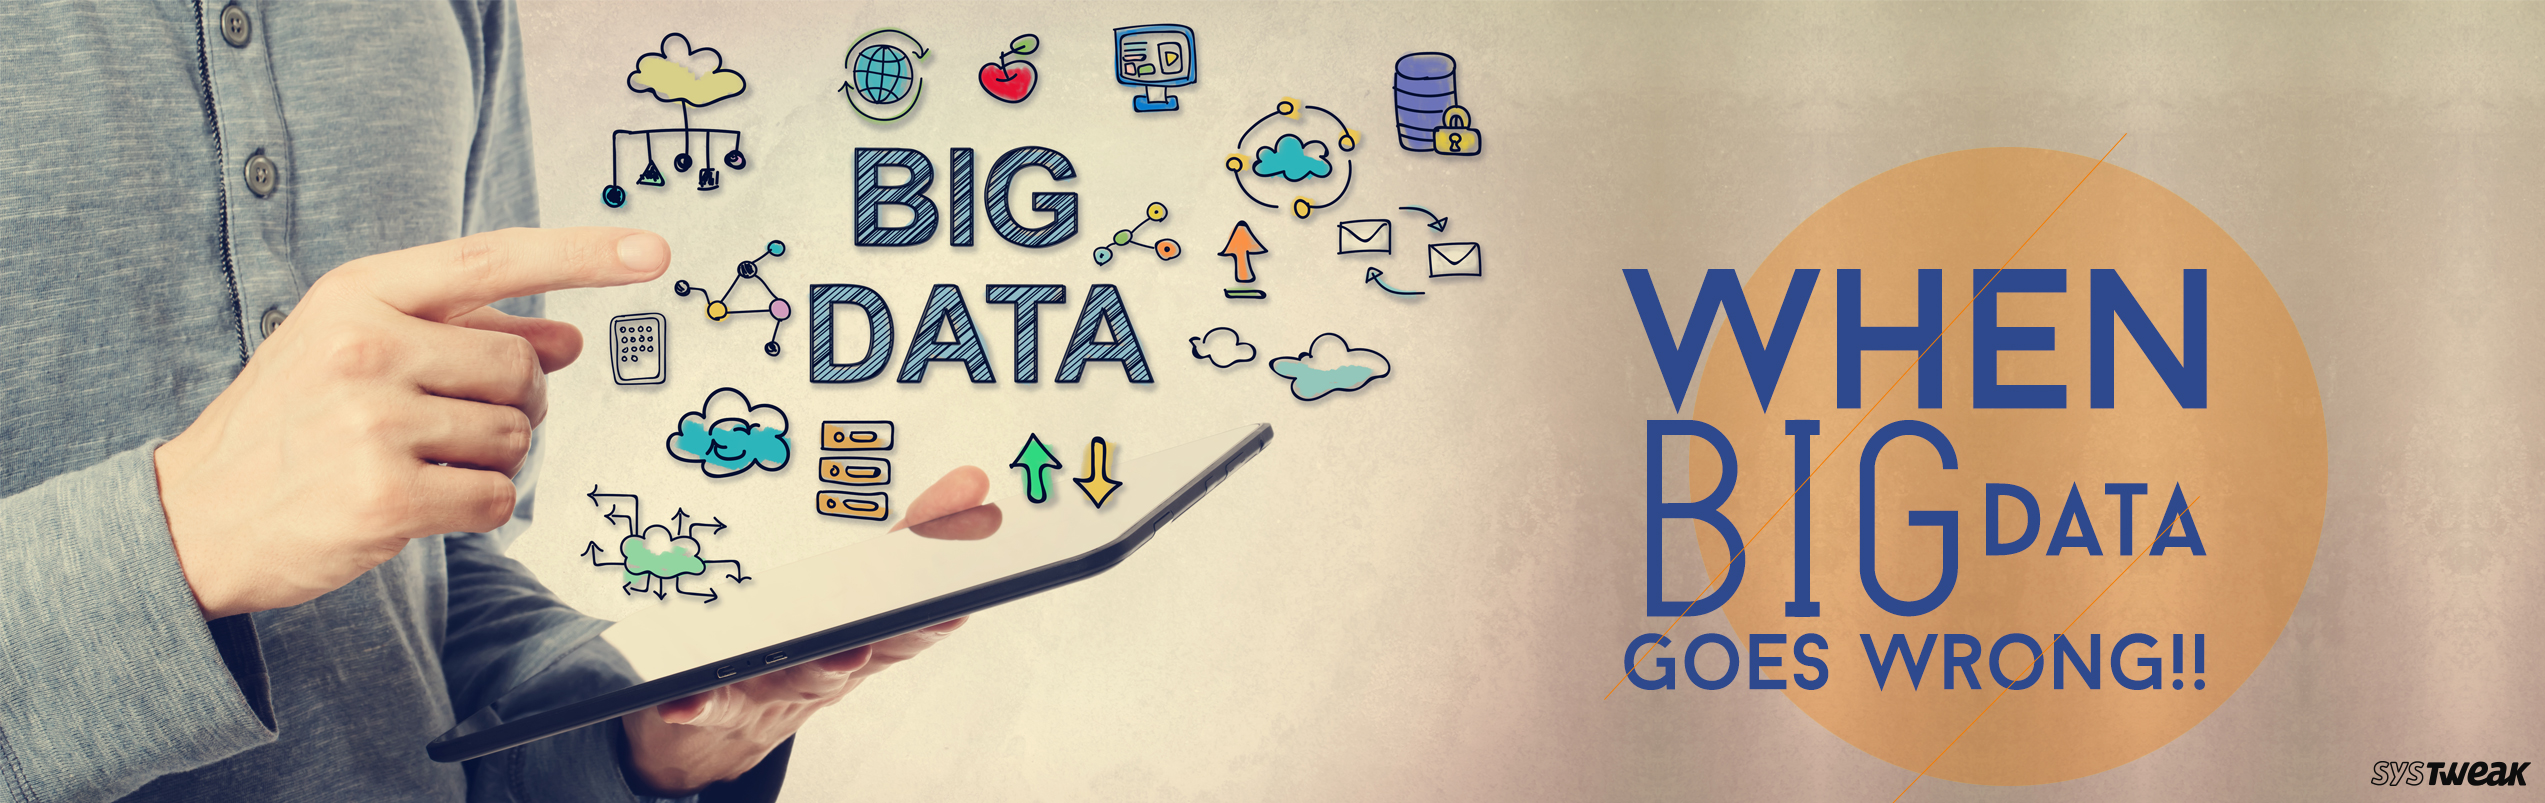 What Could Possibly Go Wrong With Big Data?